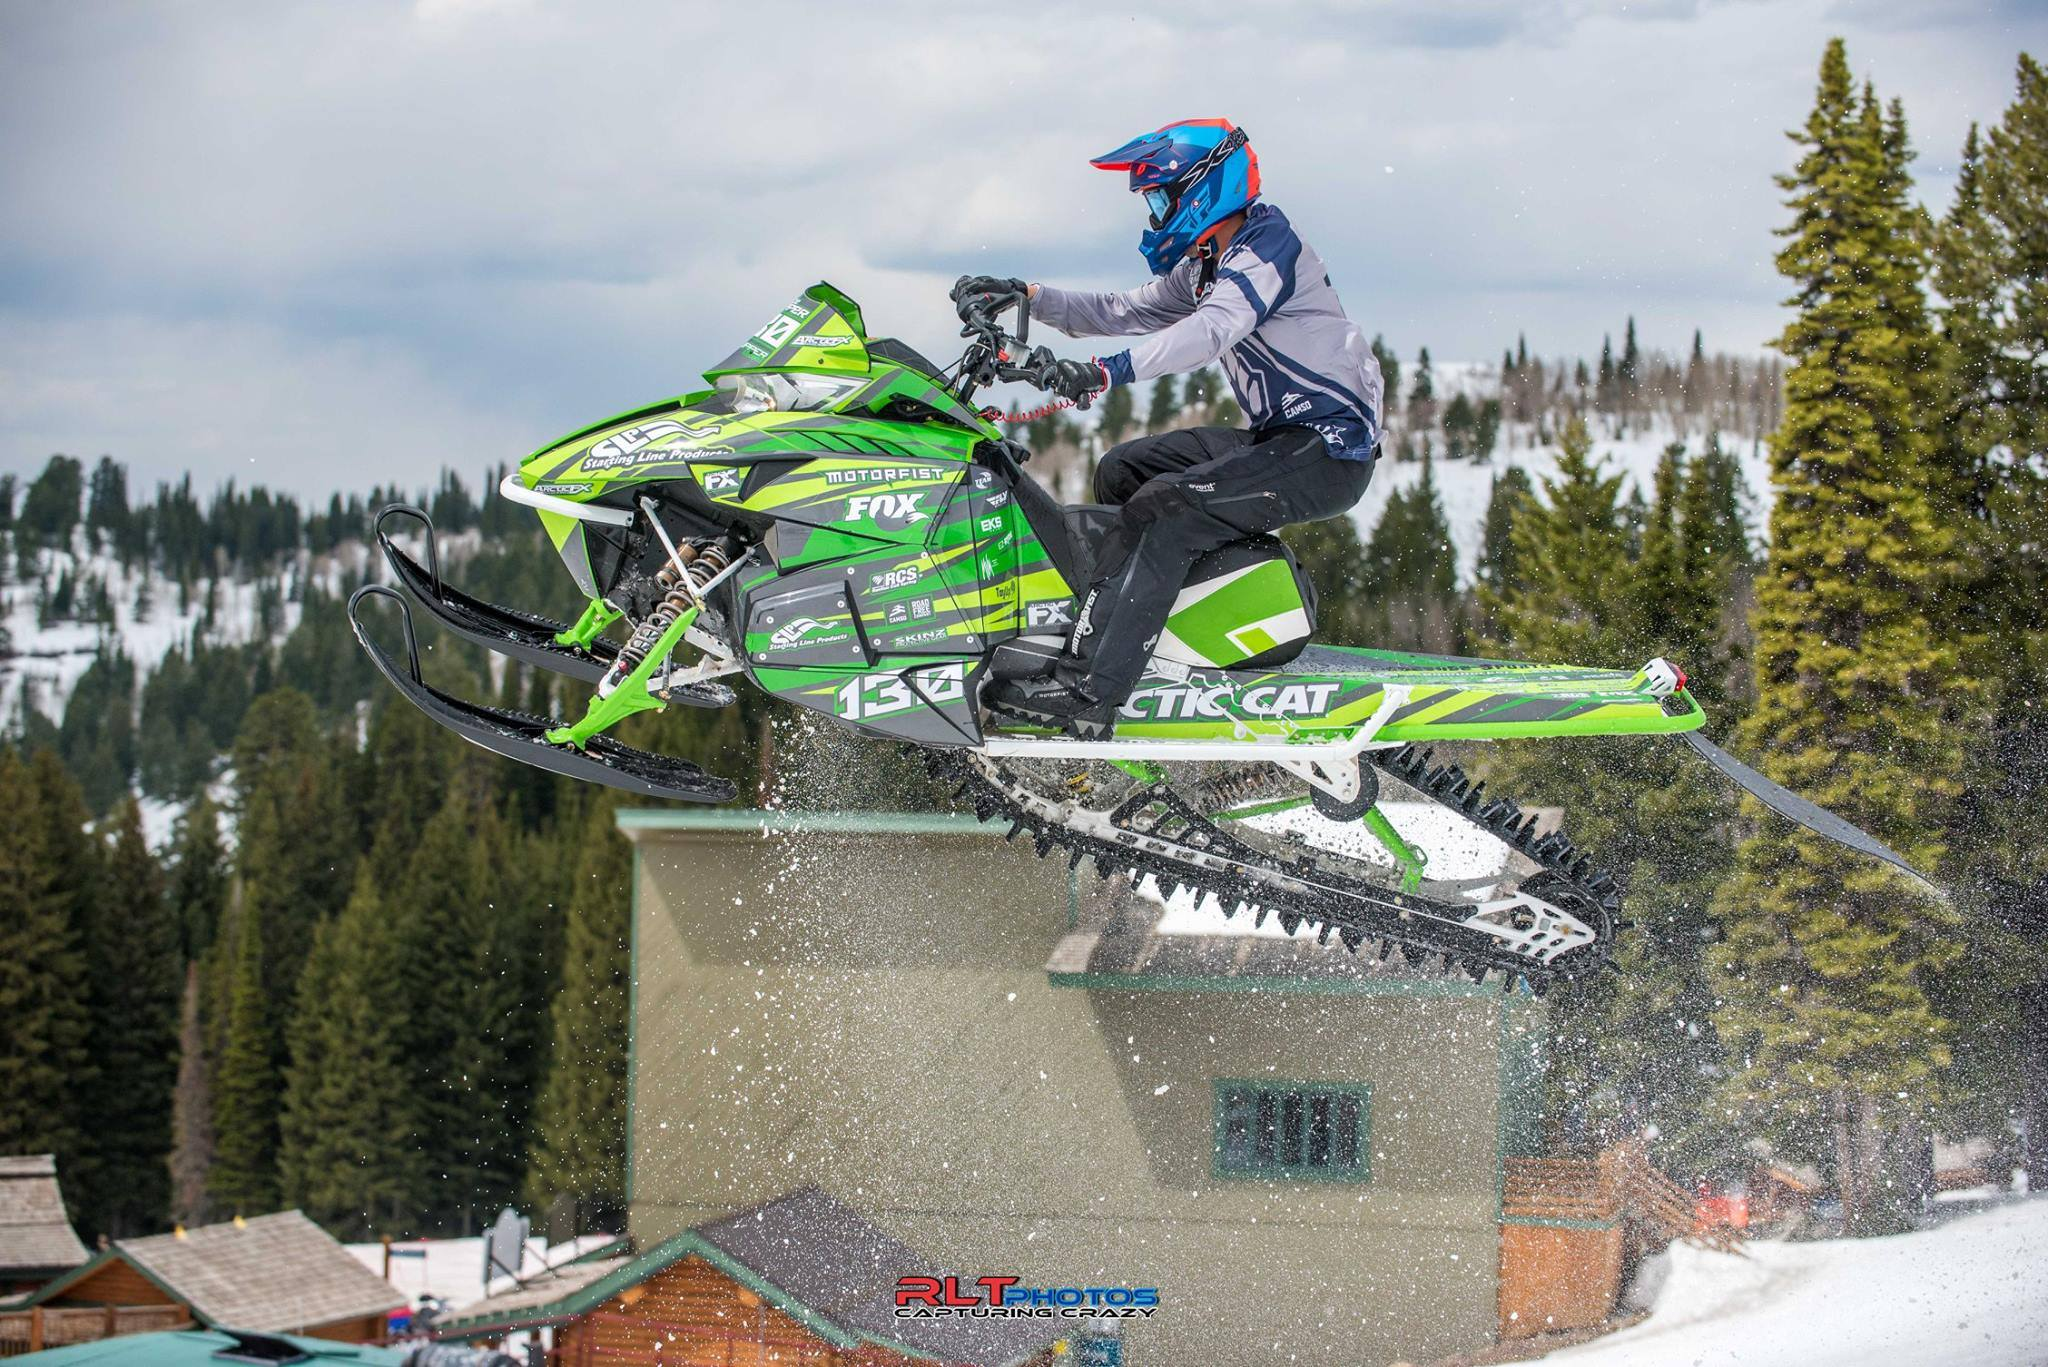 Team Arctic Cat's Trace Tupper wins at Crazy Horse. Photo by RLT.